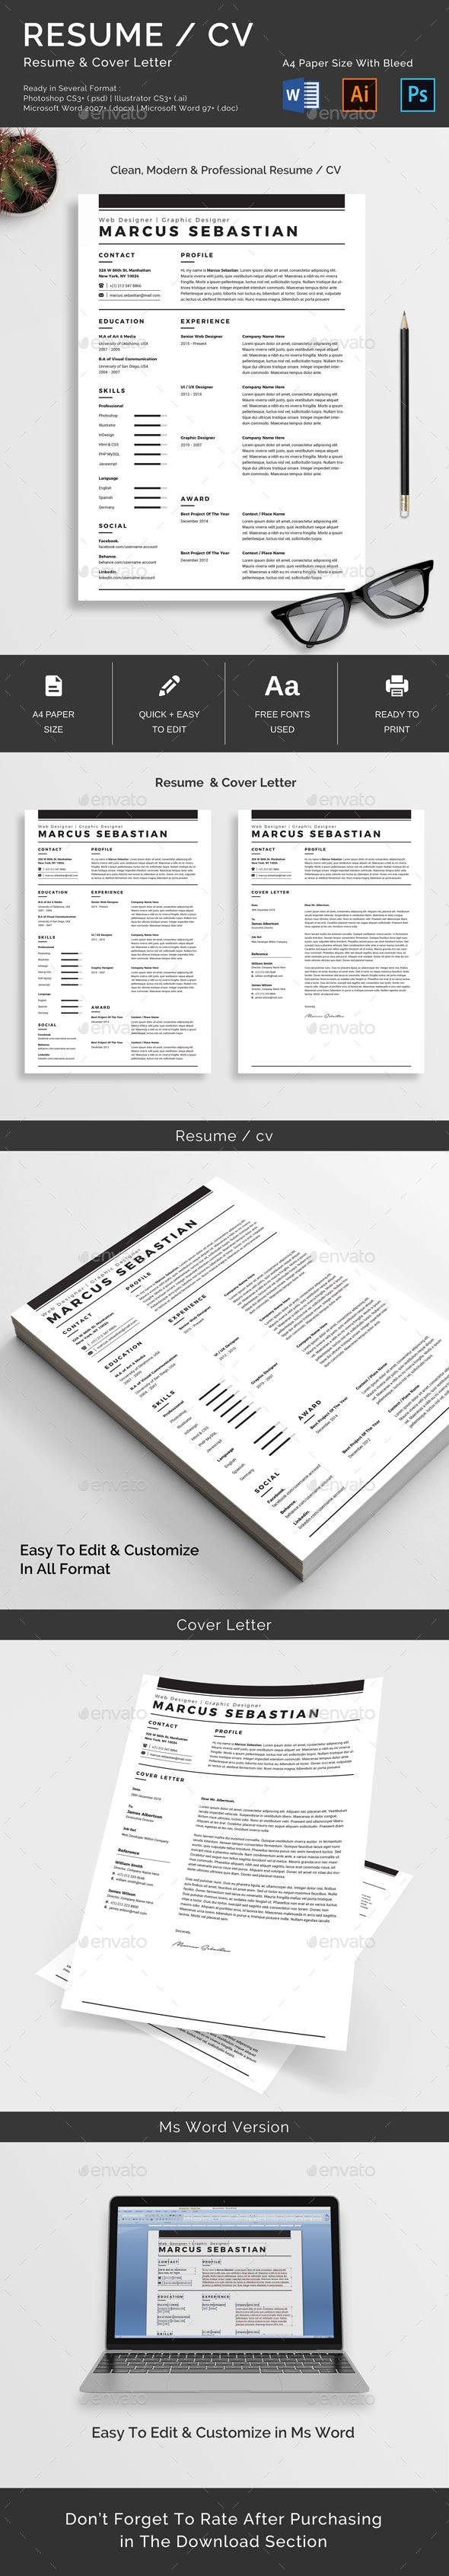 features one page resumecv cover letter a4 paper size with bleed ready in several format ai psd docx doc well organized labeled layers fully